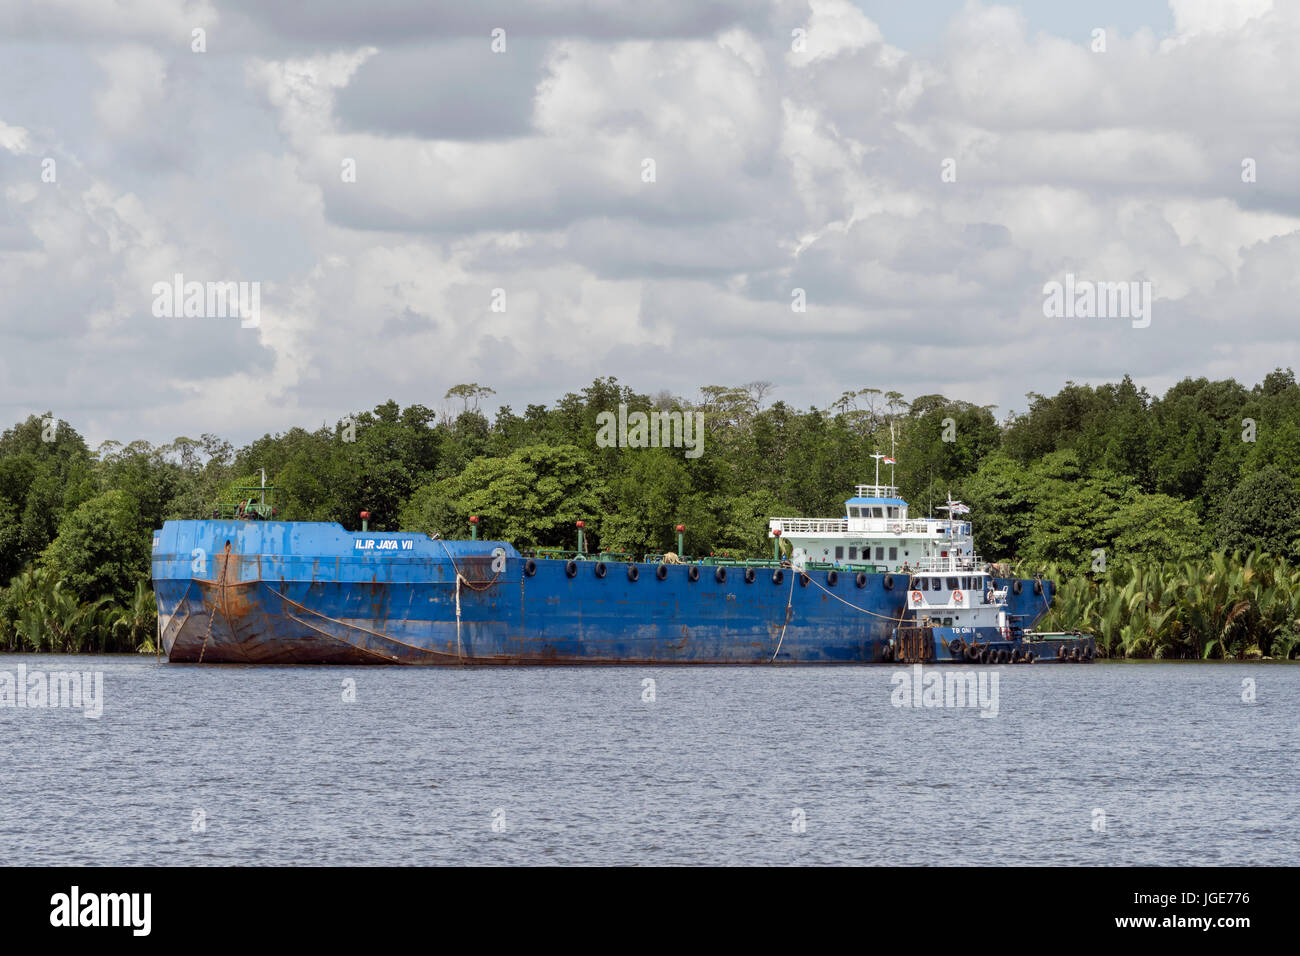 Freighter anchored by the banks of the Kumai River, Kalimantan Province, Borneo - Stock Image